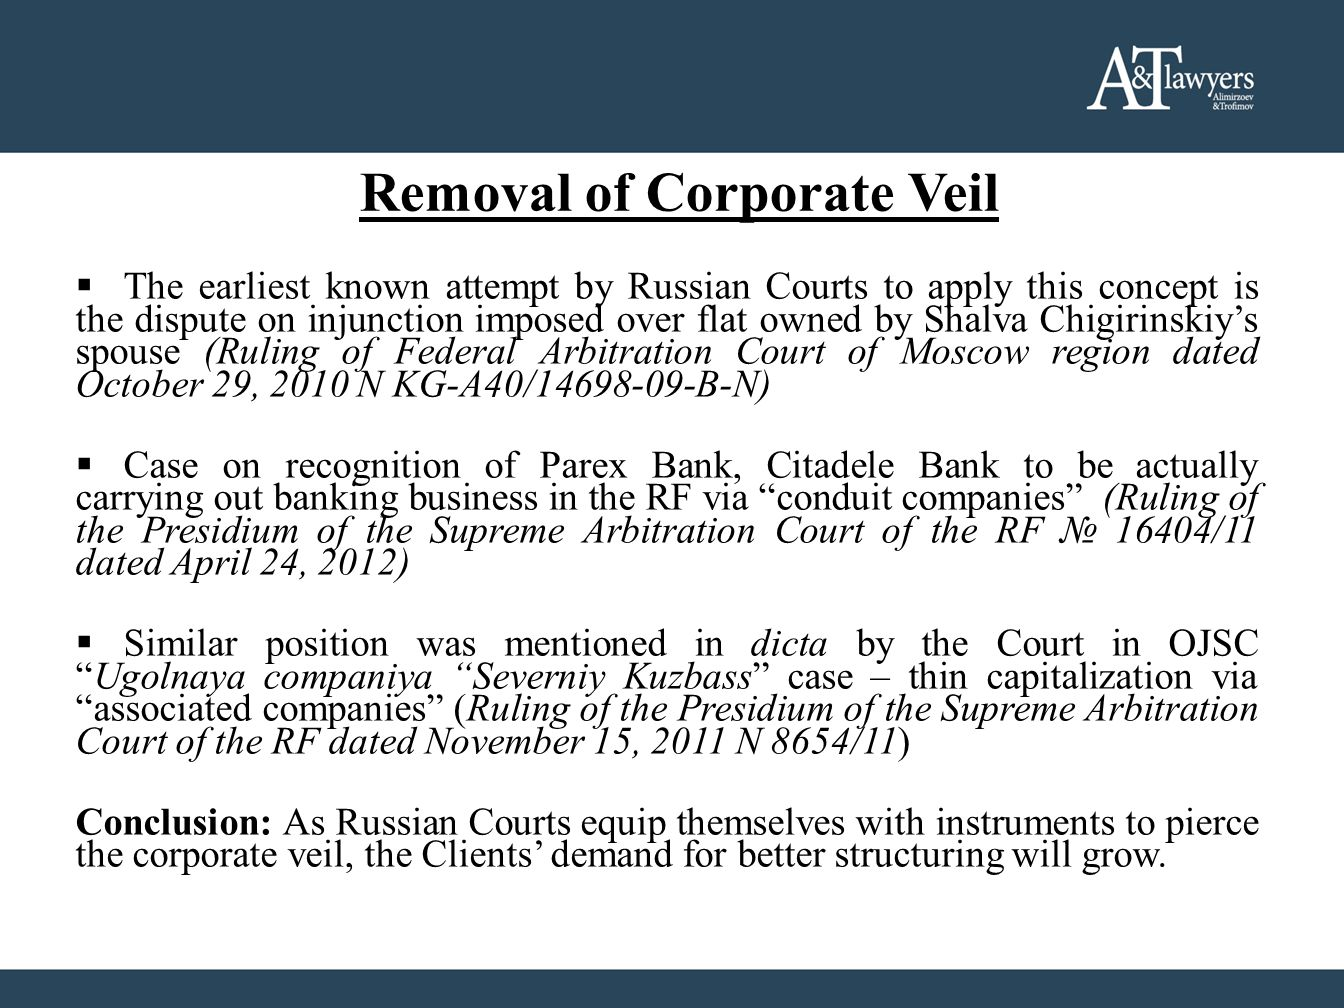 Removal of Corporate Veil  The earliest known attempt by Russian Courts to apply this concept is the dispute on injunction imposed over flat owned by Shalva Chigirinskiy's spouse (Ruling of Federal Arbitration Court of Moscow region dated October 29, 2010 N KG-А40/14698-09-B-N)  Case on recognition of Parex Bank, Citadele Bank to be actually carrying out banking business in the RF via conduit companies (Ruling of the Presidium of the Supreme Arbitration Court of the RF № 16404/11 dated April 24, 2012)  Similar position was mentioned in dicta by the Court in OJSC Ugolnaya companiya Severniy Kuzbass case – thin capitalization via associated companies (Ruling of the Presidium of the Supreme Arbitration Court of the RF dated November 15, 2011 N 8654/11) Conclusion: As Russian Courts equip themselves with instruments to pierce the corporate veil, the Clients' demand for better structuring will grow.